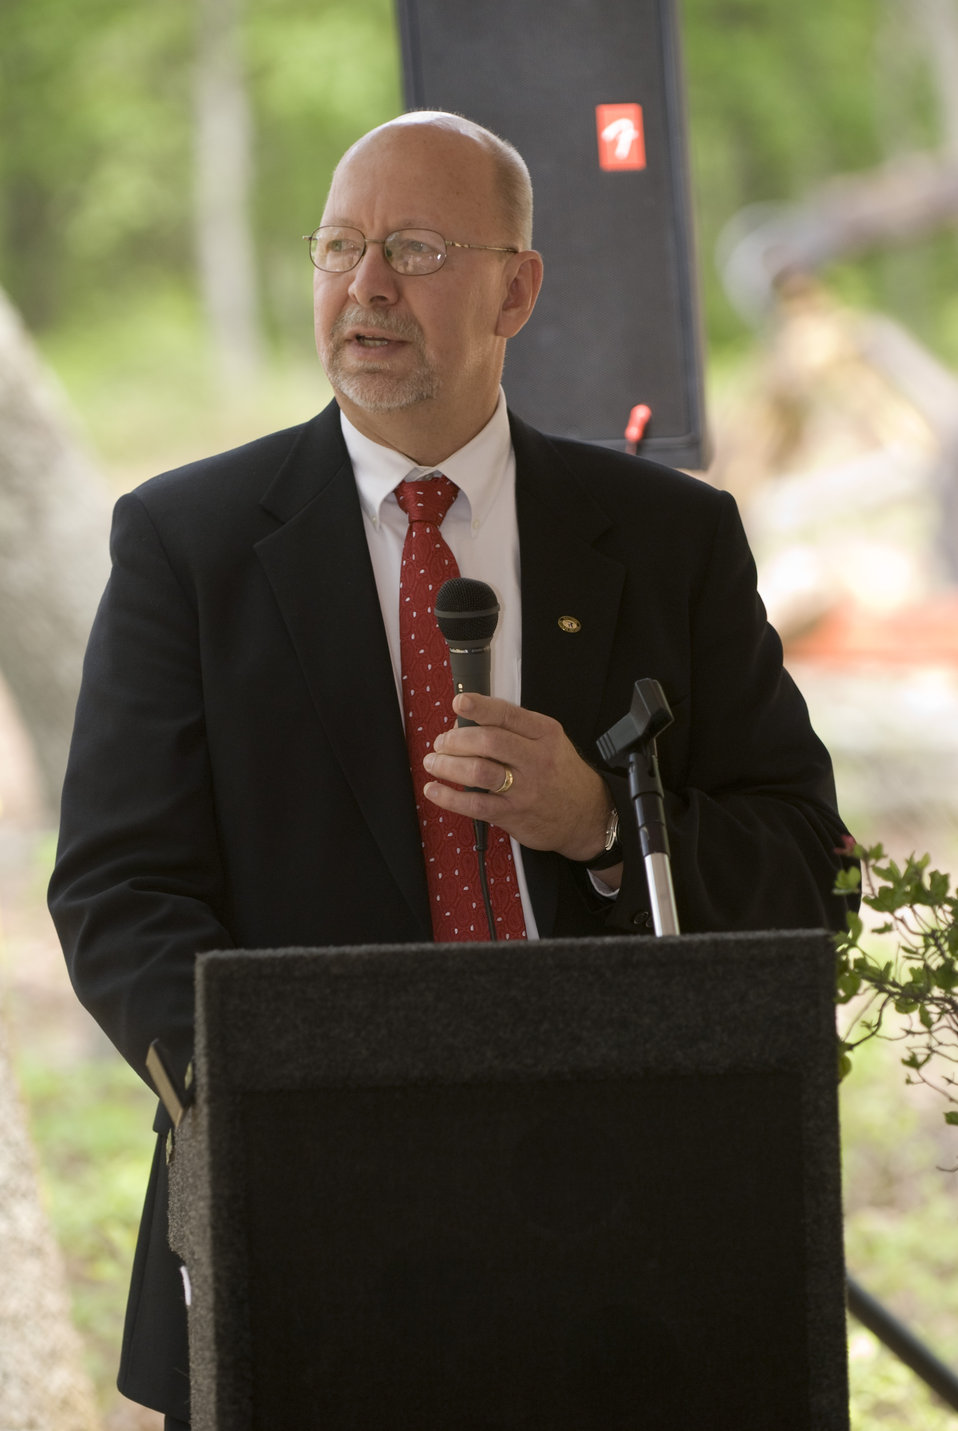 Ken Grannemann, representing the National Wildlife Refuge System